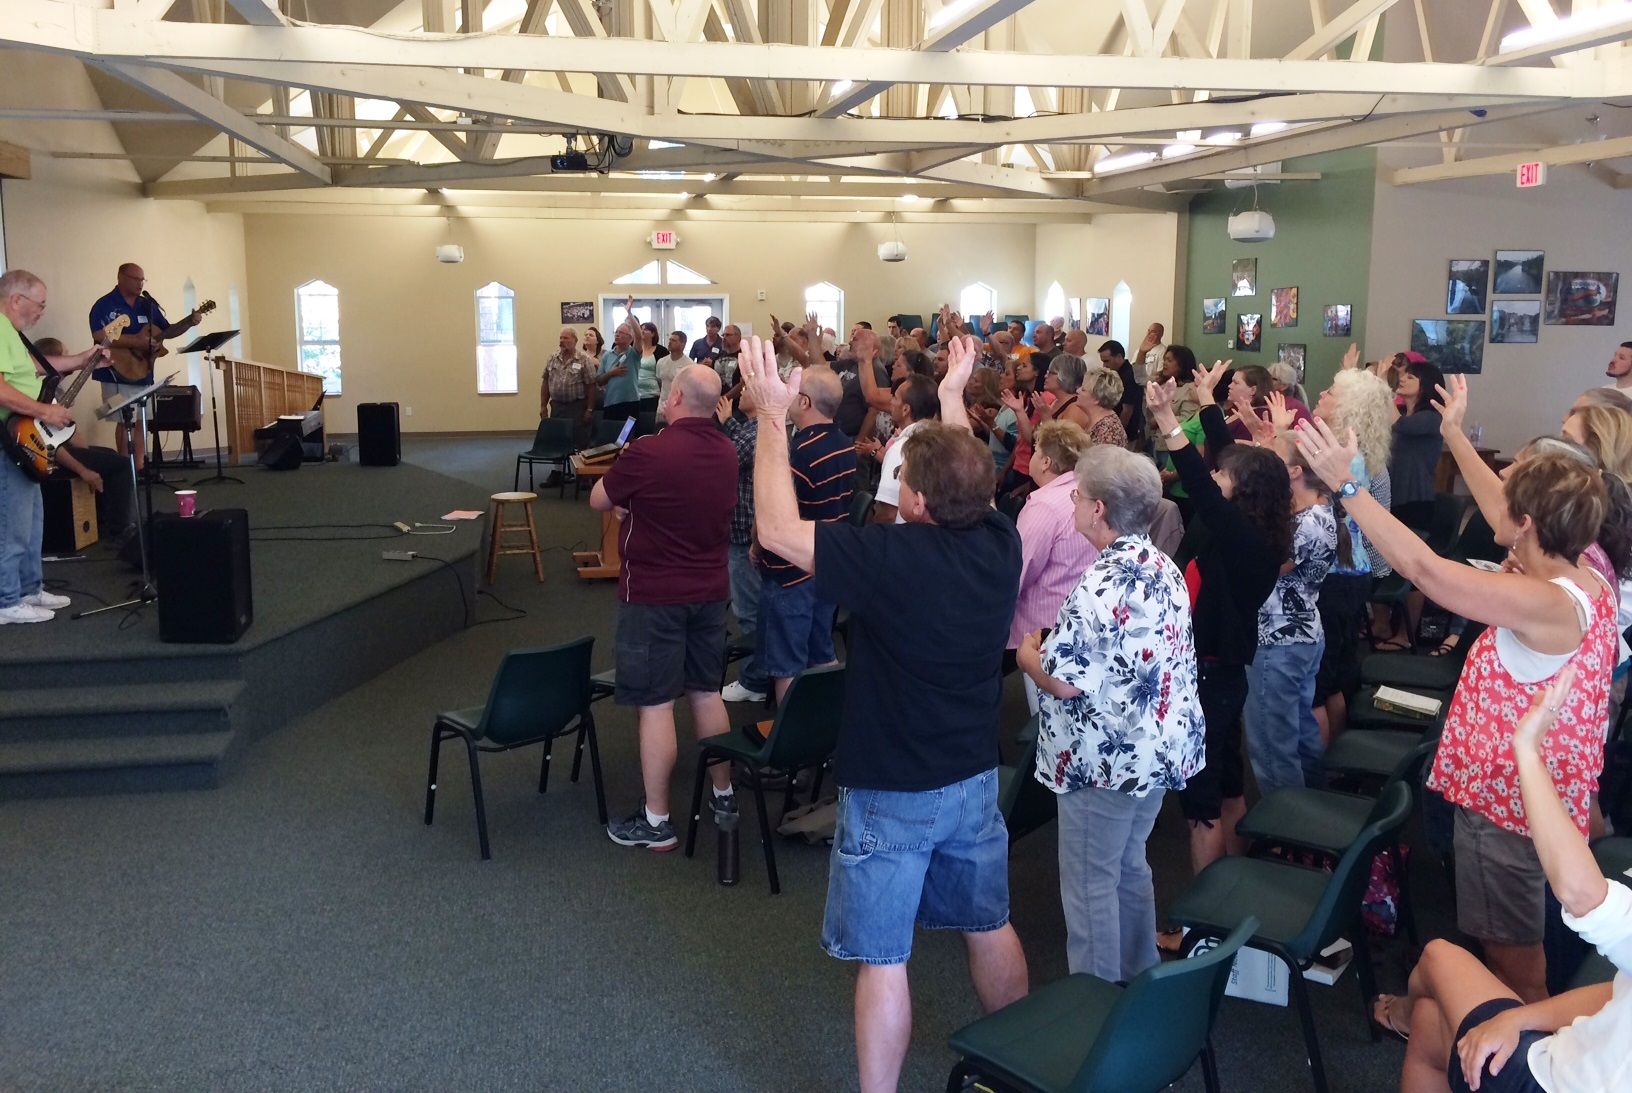 UGM staff worshipping together